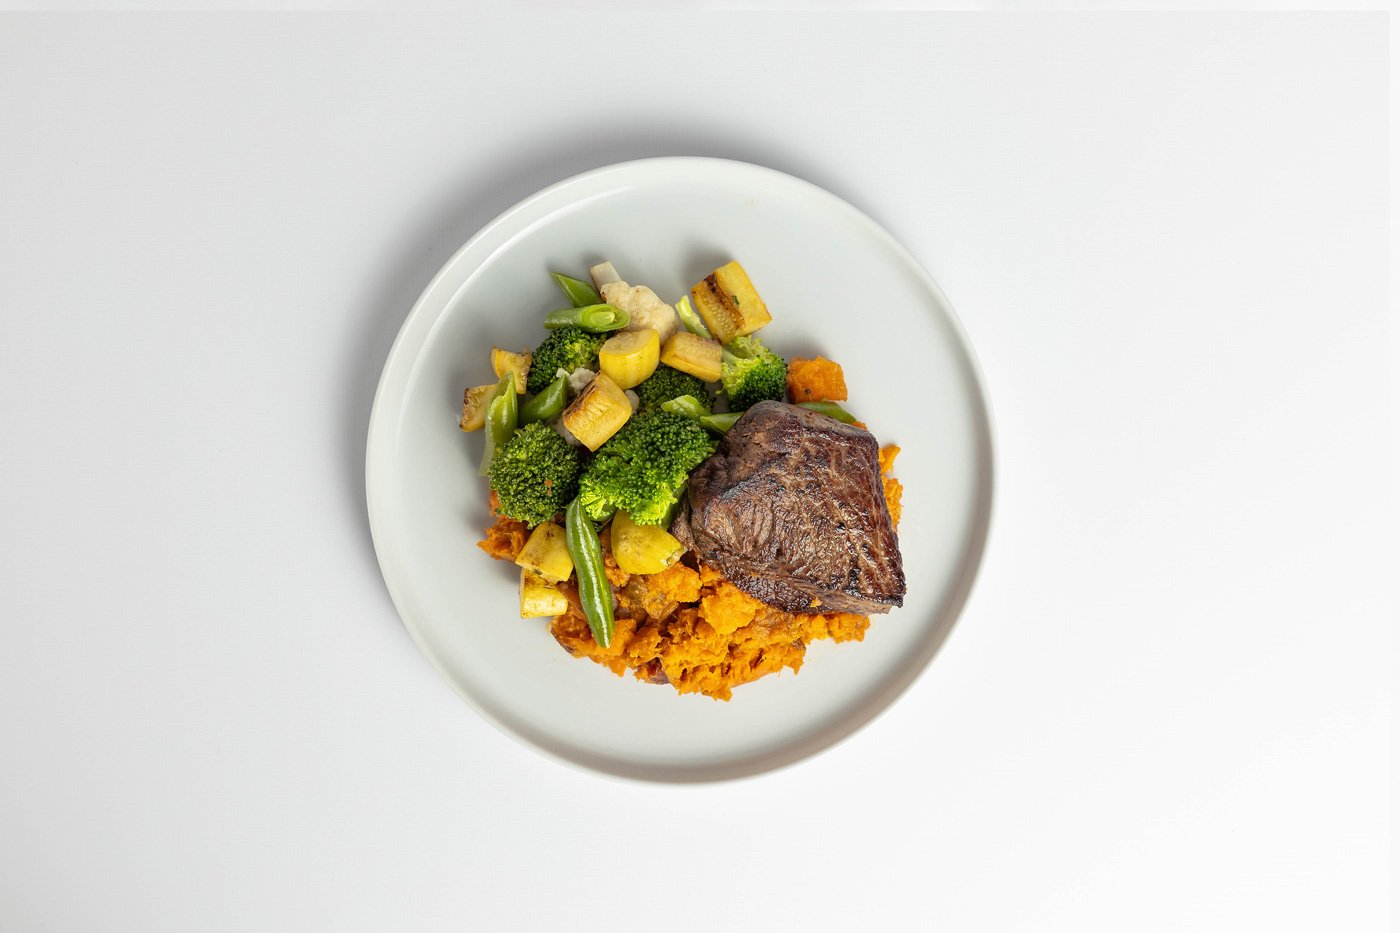 Flat Iron Steak, Sweet Potato, Mixed Vegetables Meal Product Image